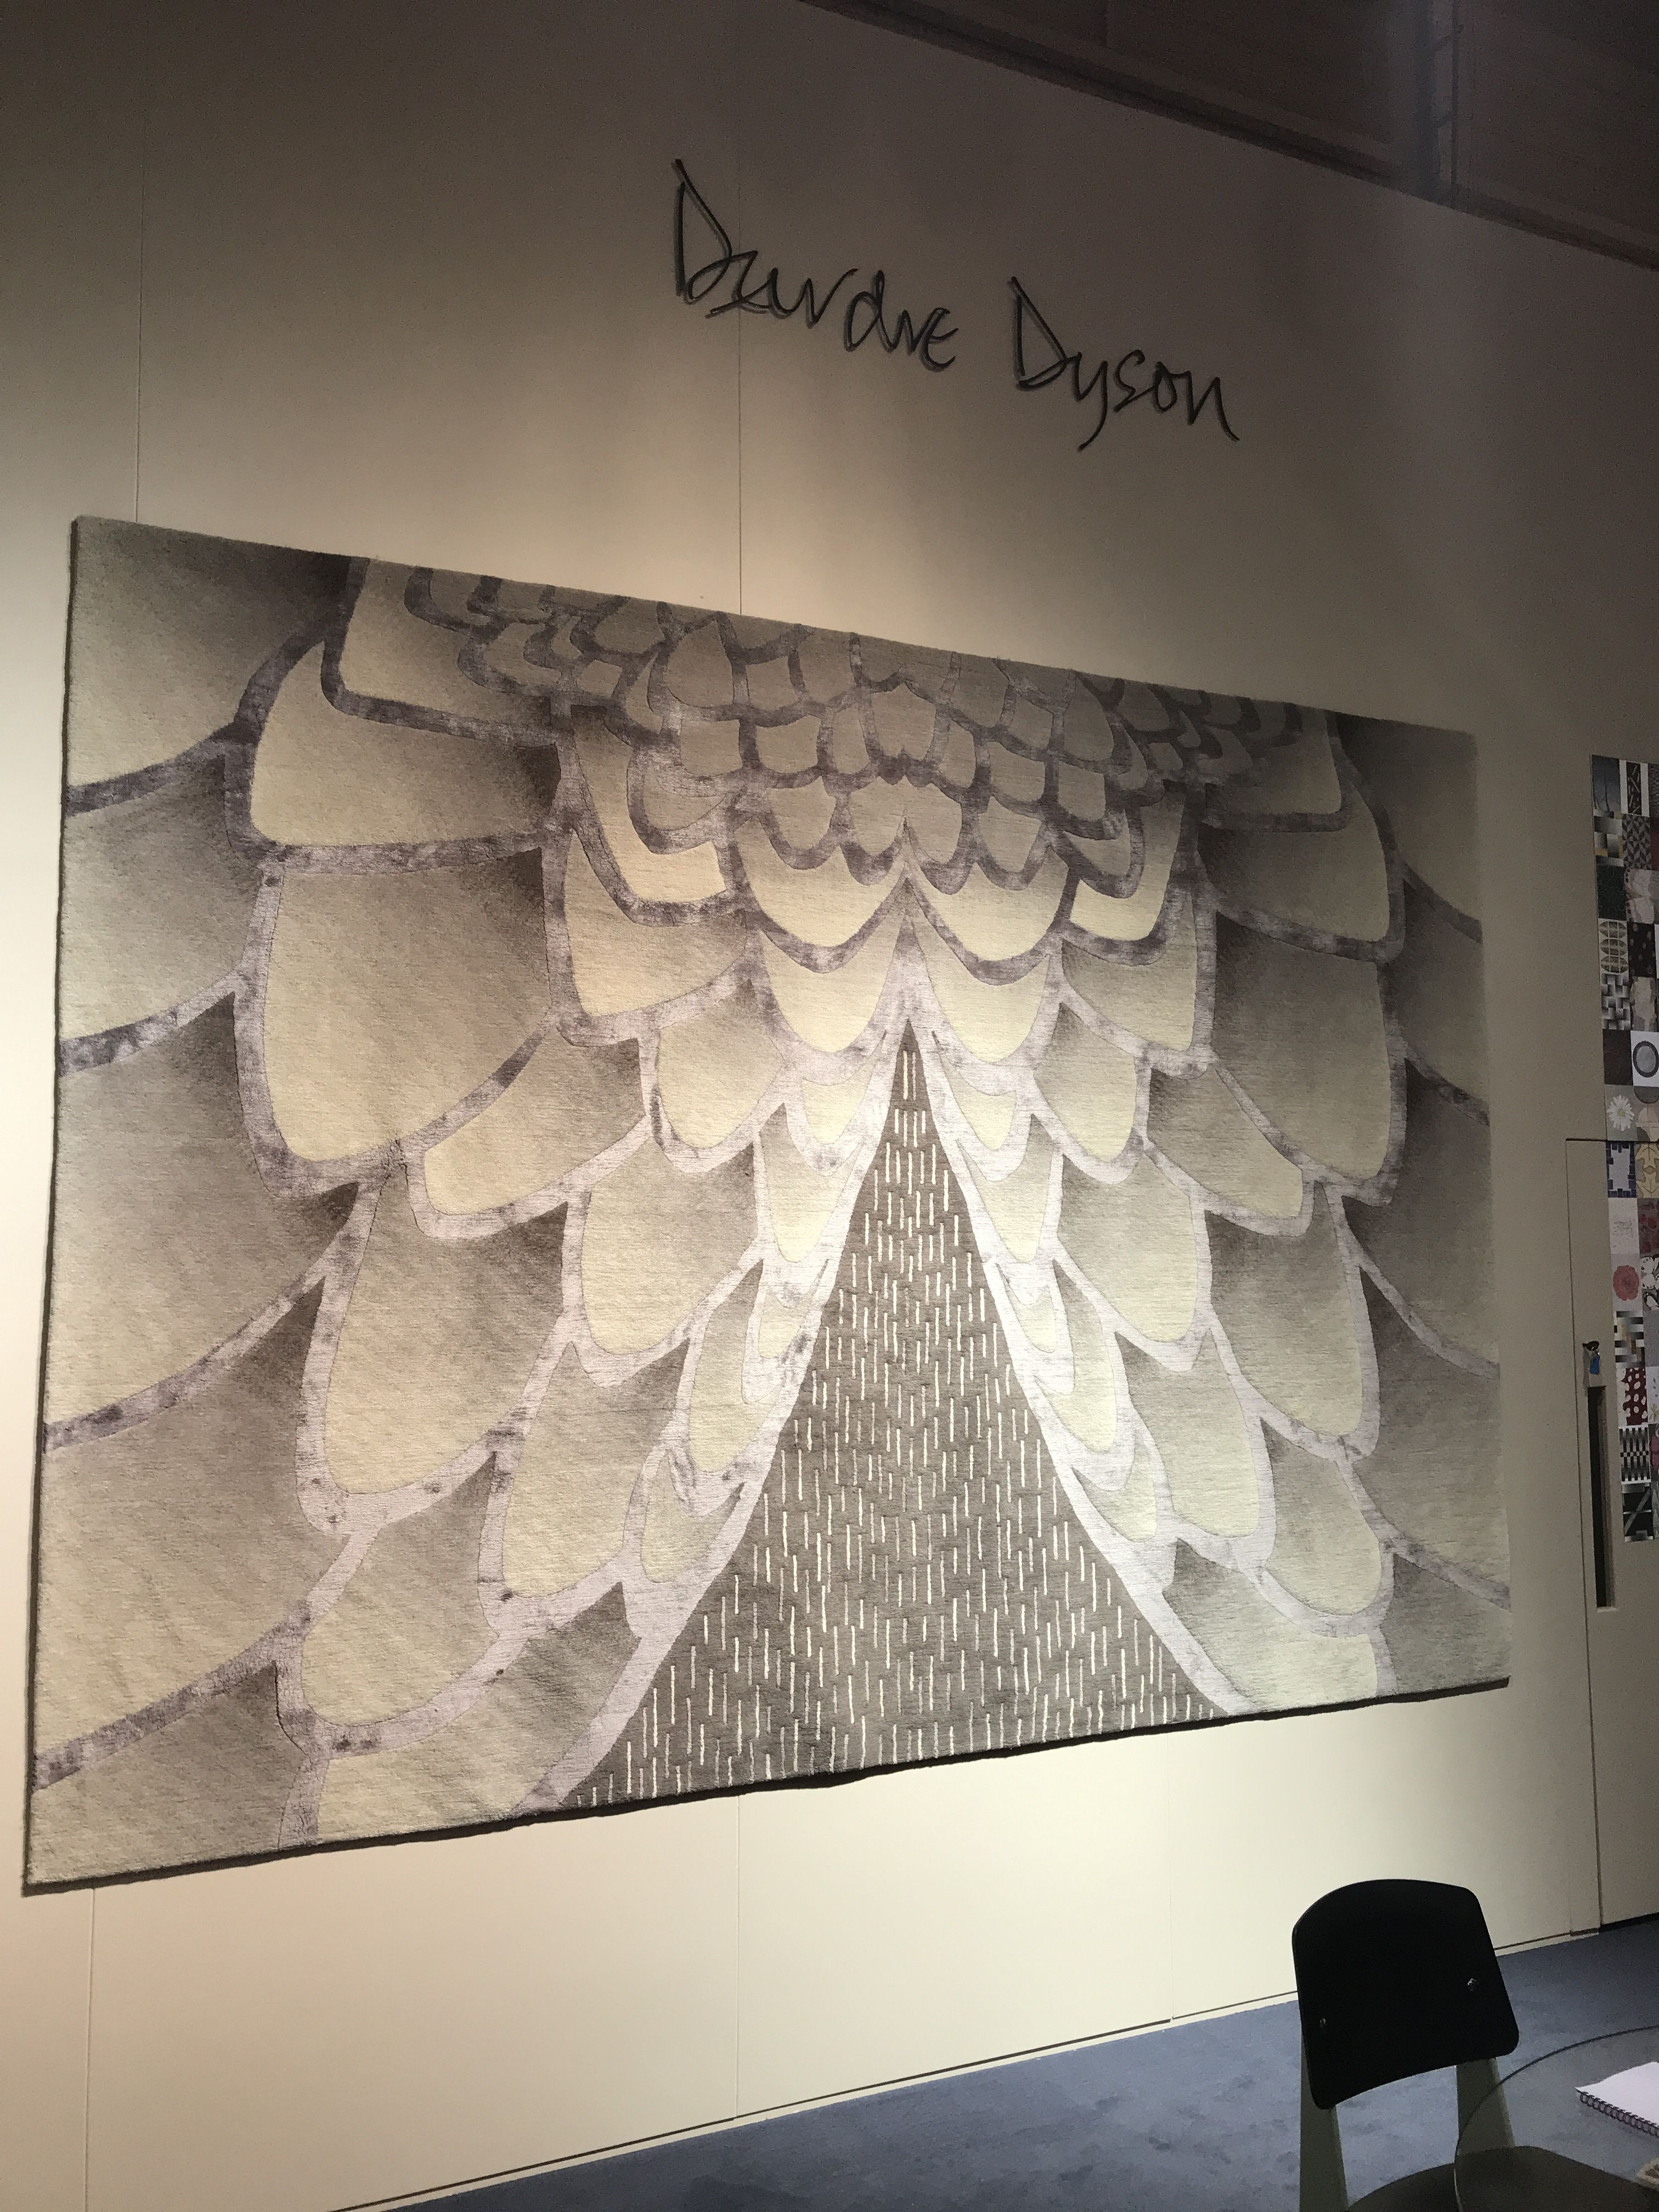 Eagle A Deirdre Dyson Hand Knotted Wool And Silk Rug On Display